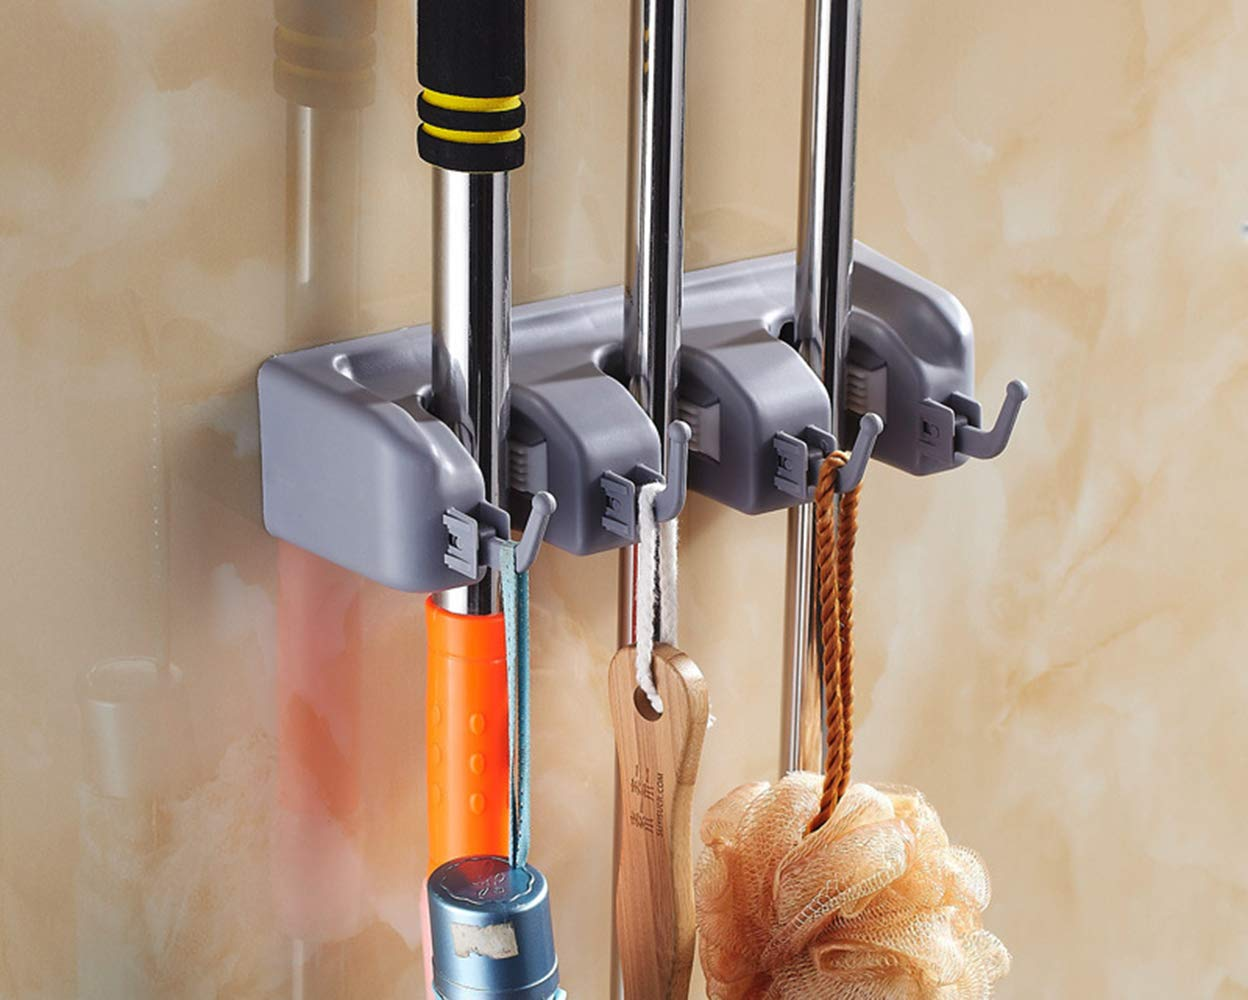 MZ4EVER Mop and Broom Holder Rack Storage, 3 Position with 4 Hooks Garden Tool Organizer Wall Mounted (Grey)